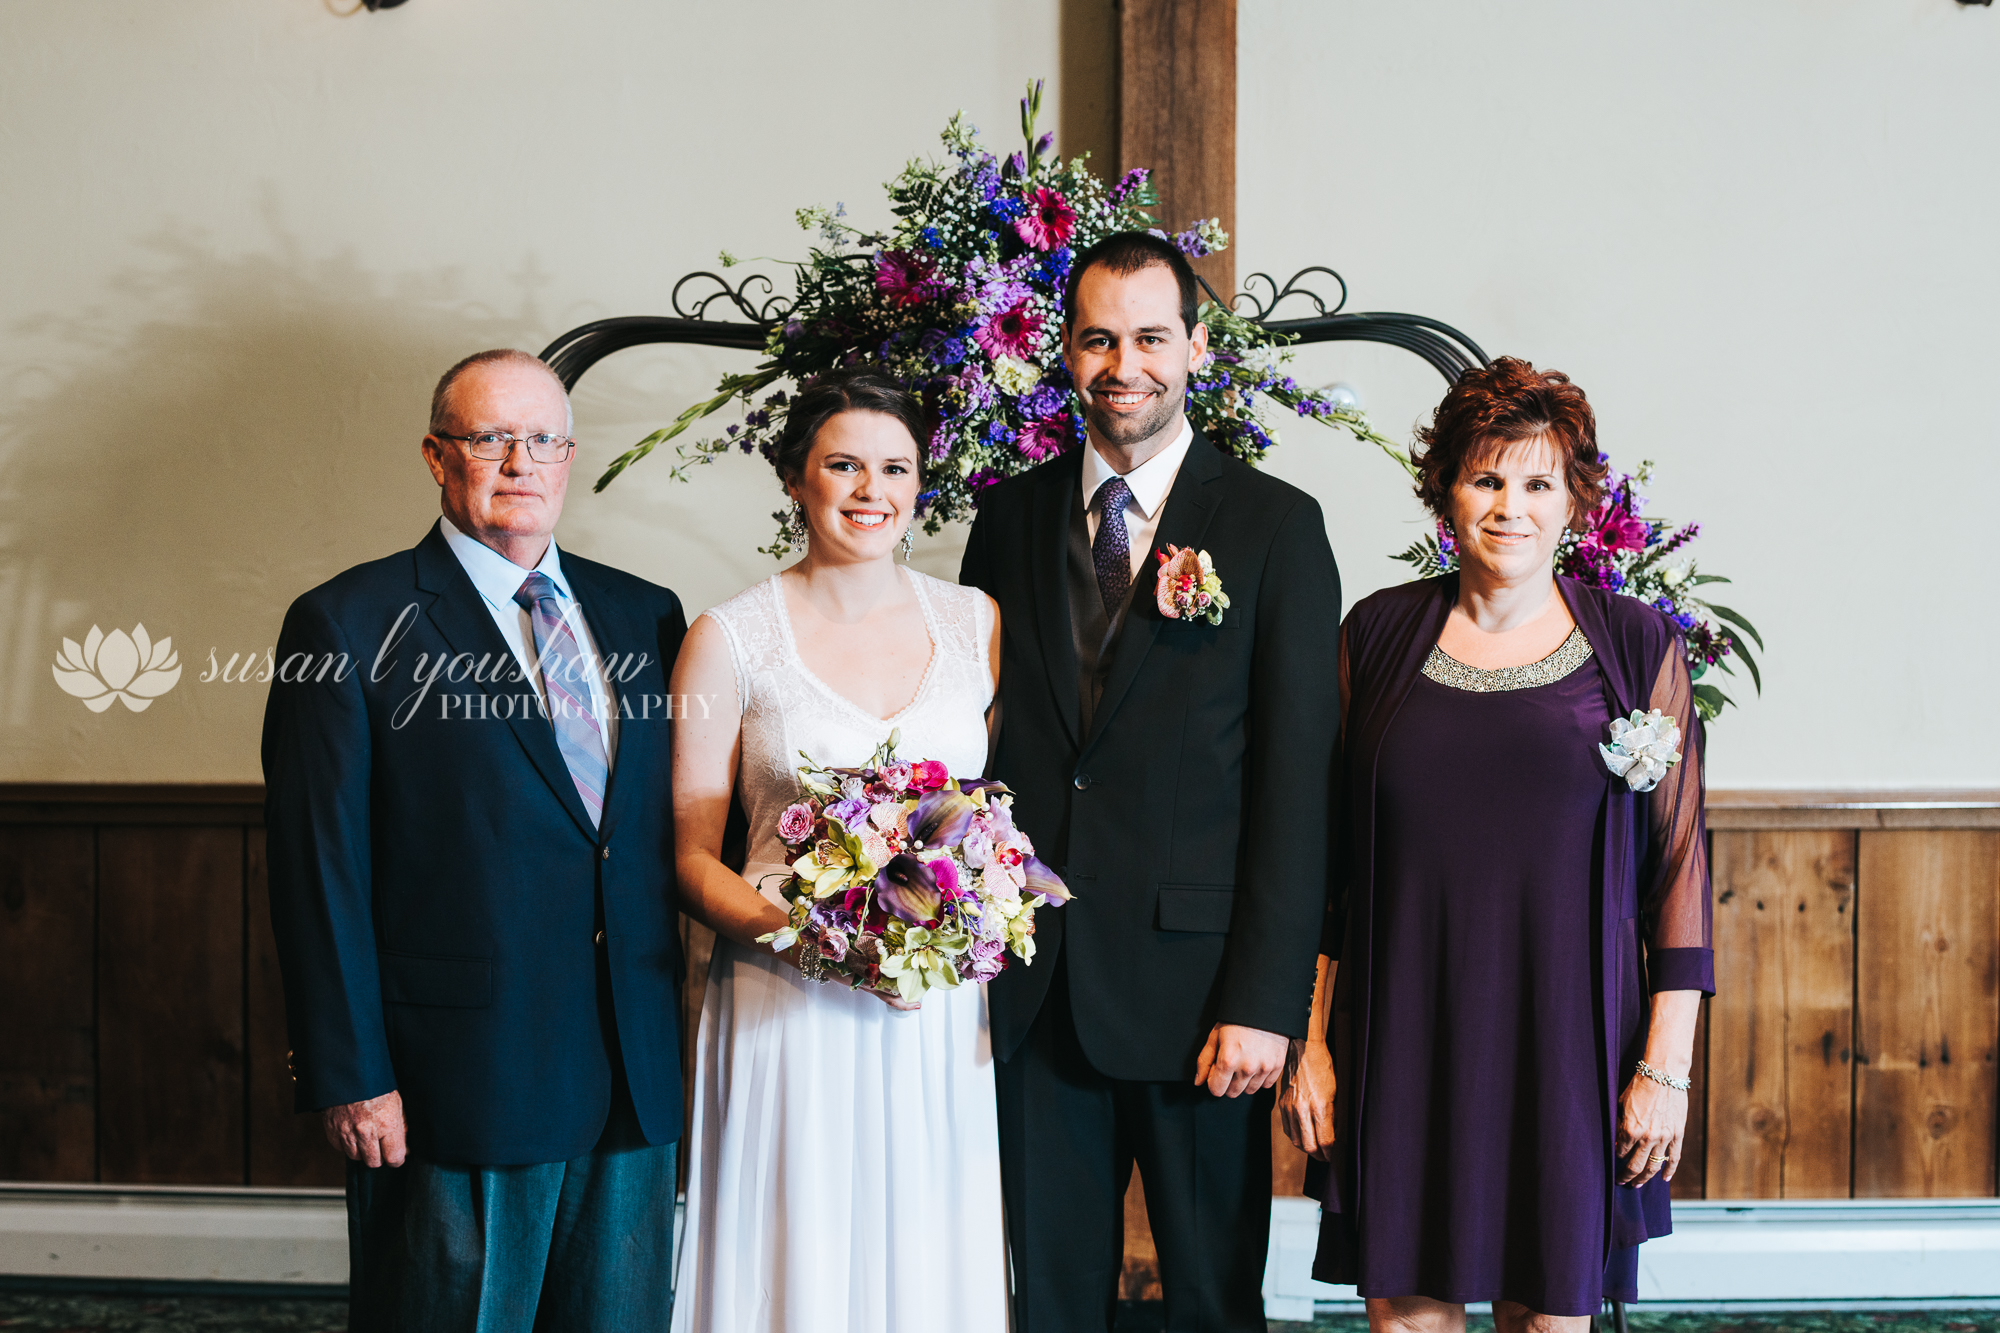 Adena and  Erik Wedding 05-17-2019 SLY Photography-46.jpg